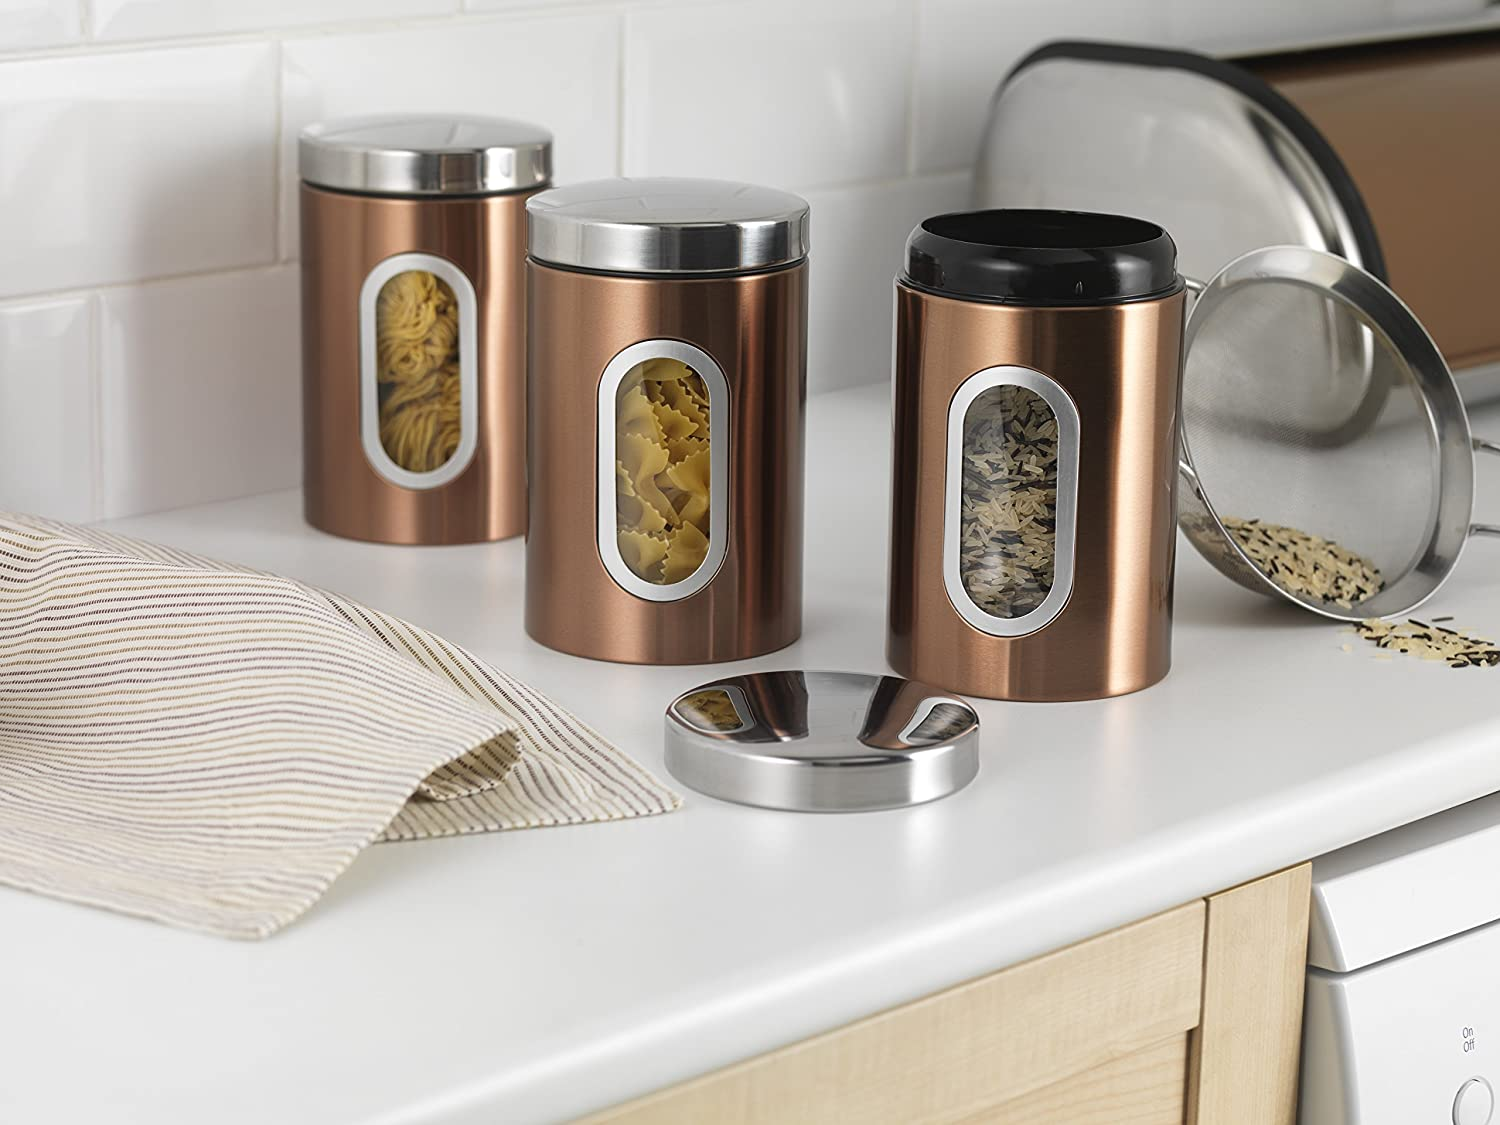 Addis Set of 3 Copper Canisters